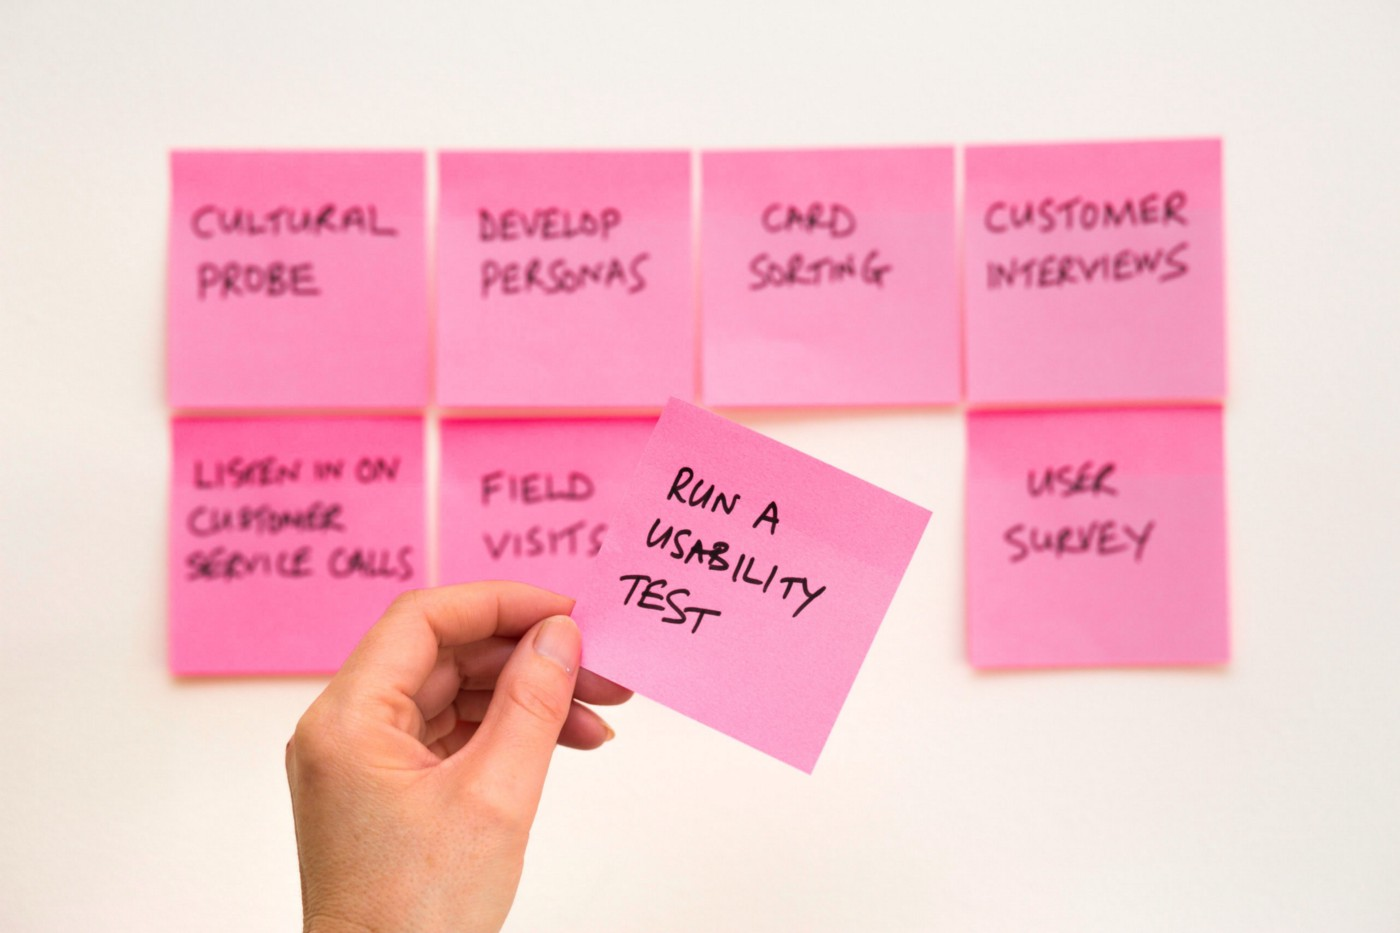 Pink sticky notes with different phrases from UX design and writing, hand holding sticky in foreground with phrase